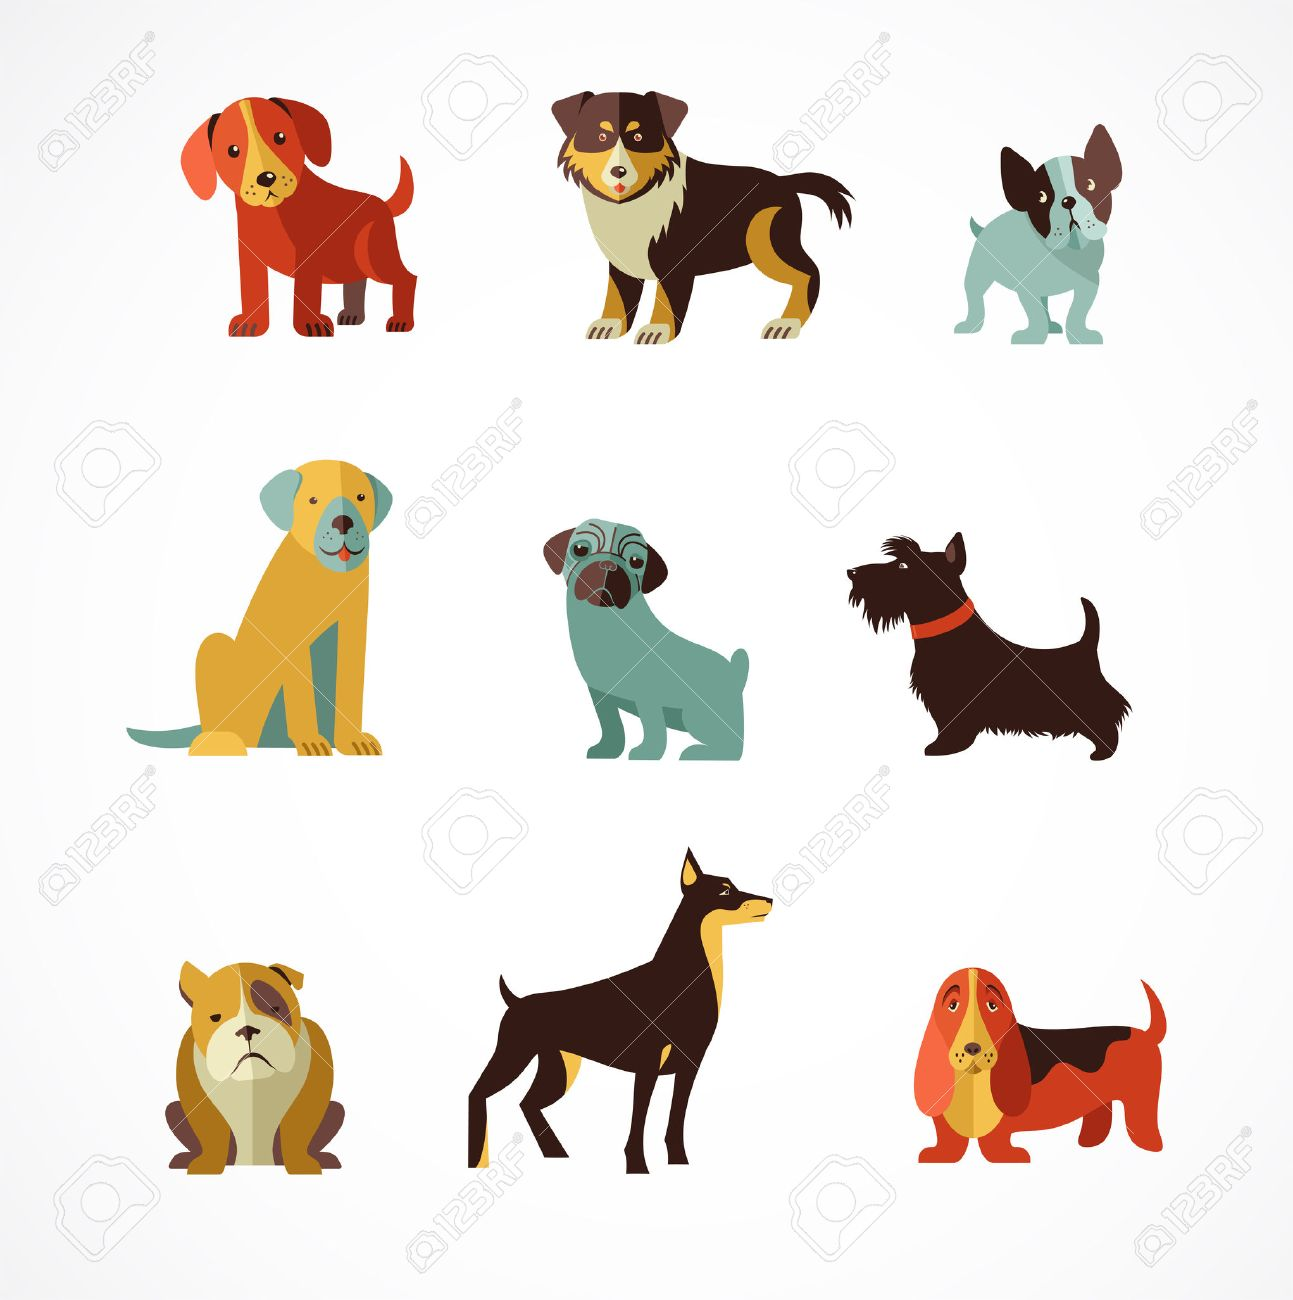 Dogs Vector Set Of Icons And Illustrations Royalty Free Cliparts Vectors And Stock Illustration Image 26573930